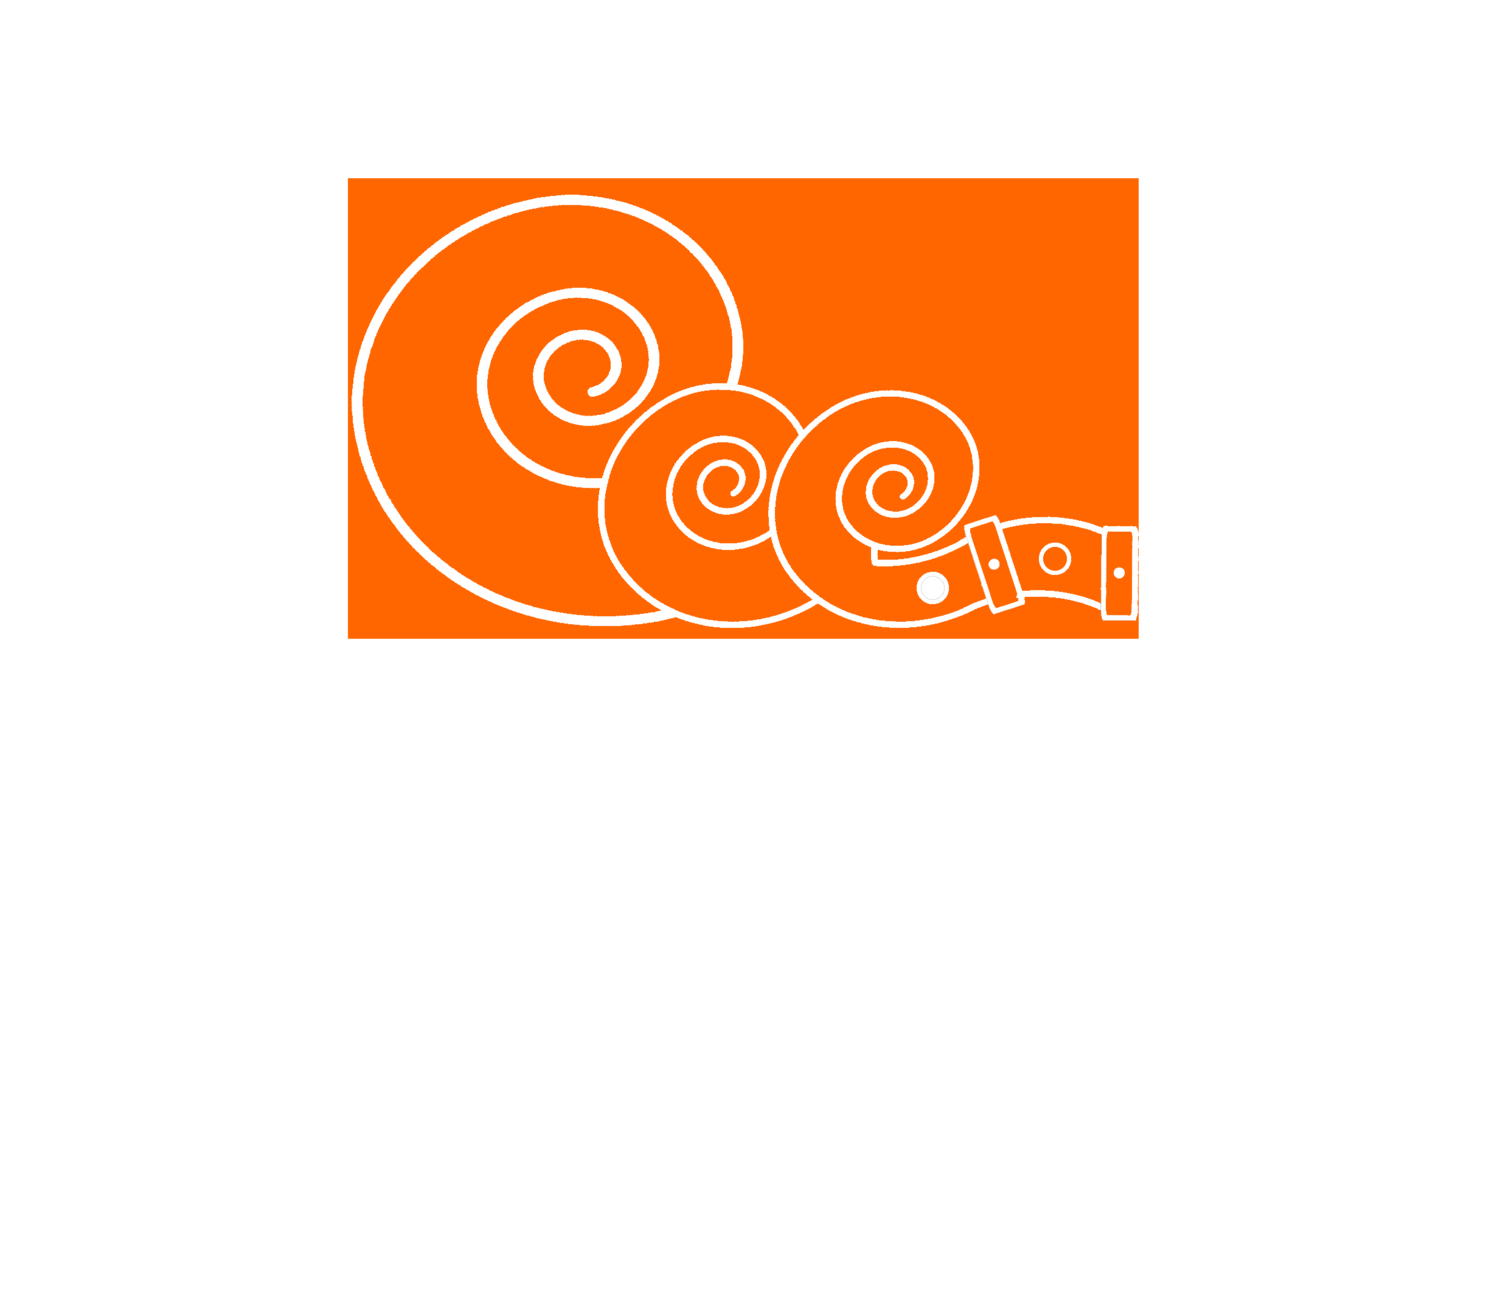 String Quartet / Trio Maxim - Wedding ceremony in Napa, Sonoma